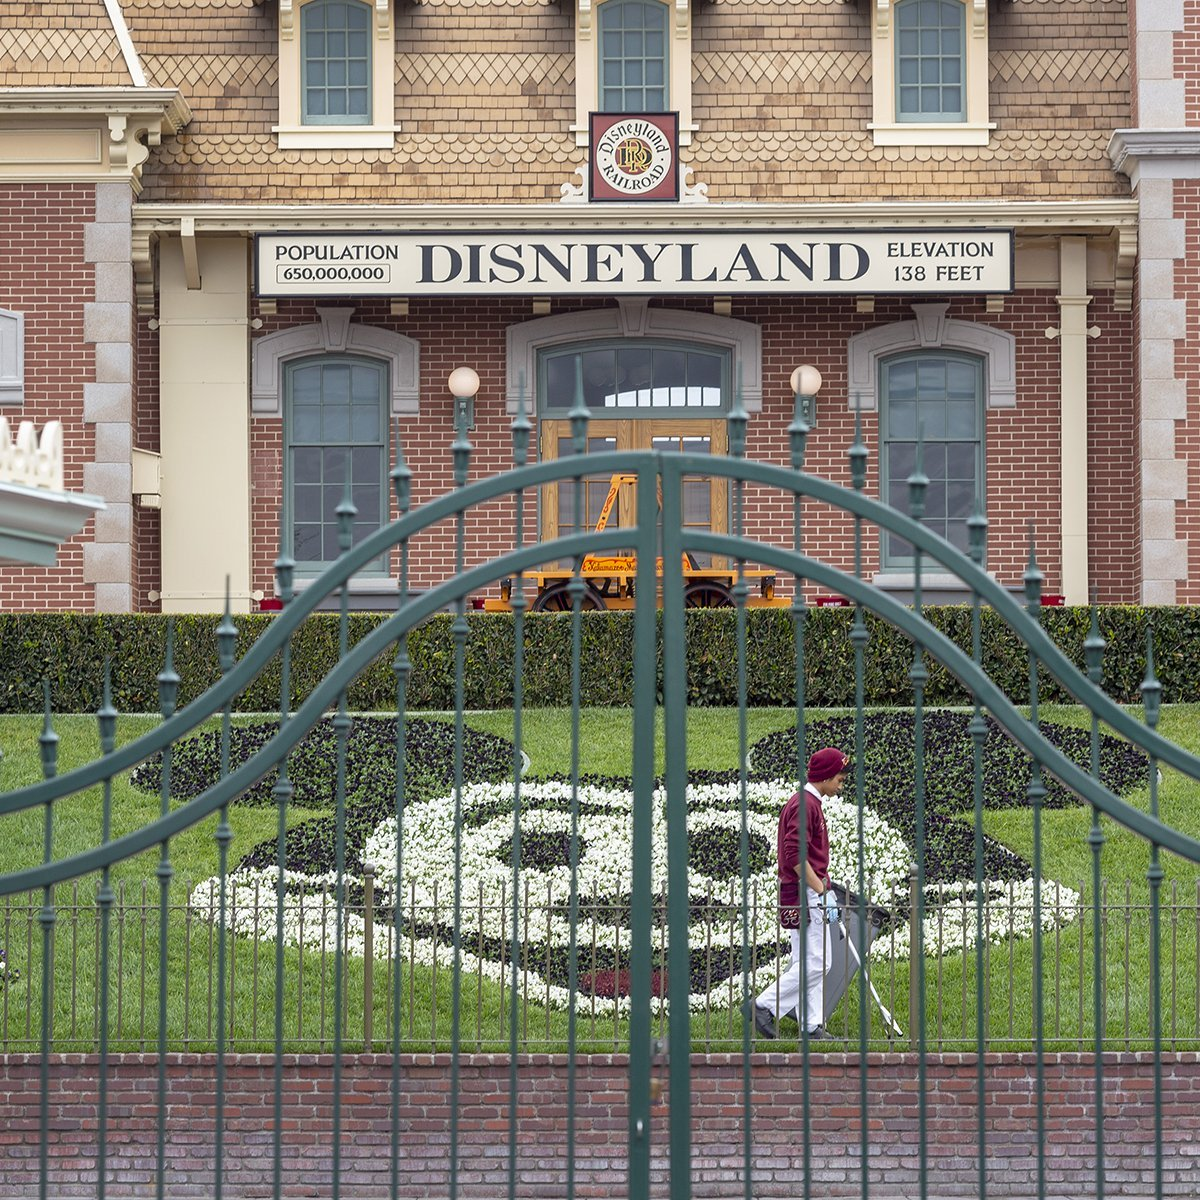 Slide 19 of 19: Disneyland temporarily closed its doors to the public in March 2020 due to the worldwide COVID-19 pandemic. Next, check out the things that will change at Disney World.